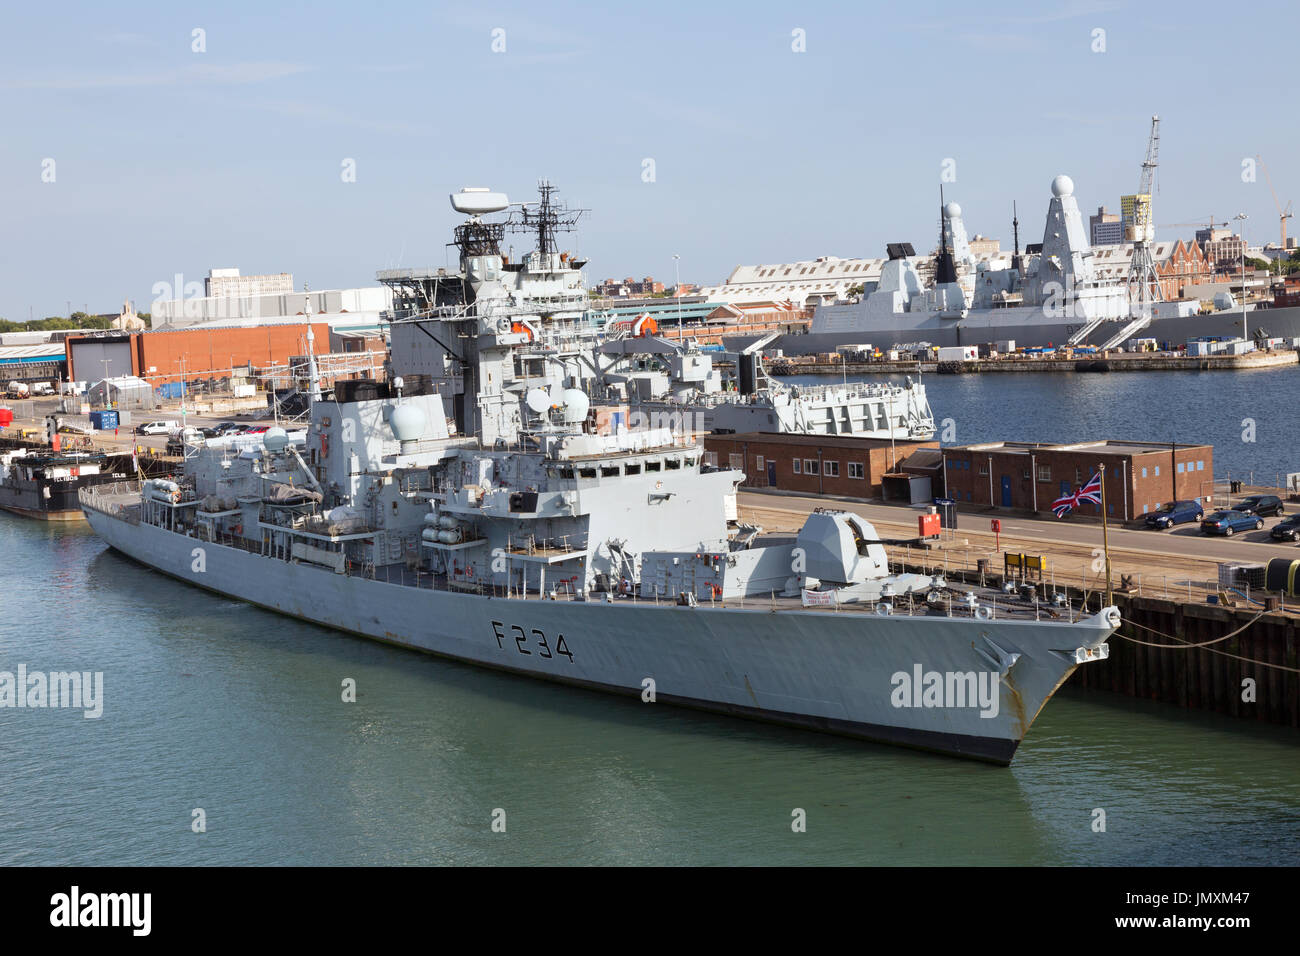 HMS Iron Duke F234, a type 23 frigate, moored in Portsmouth Naval Dockyard, Portsmouth UK - Stock Image